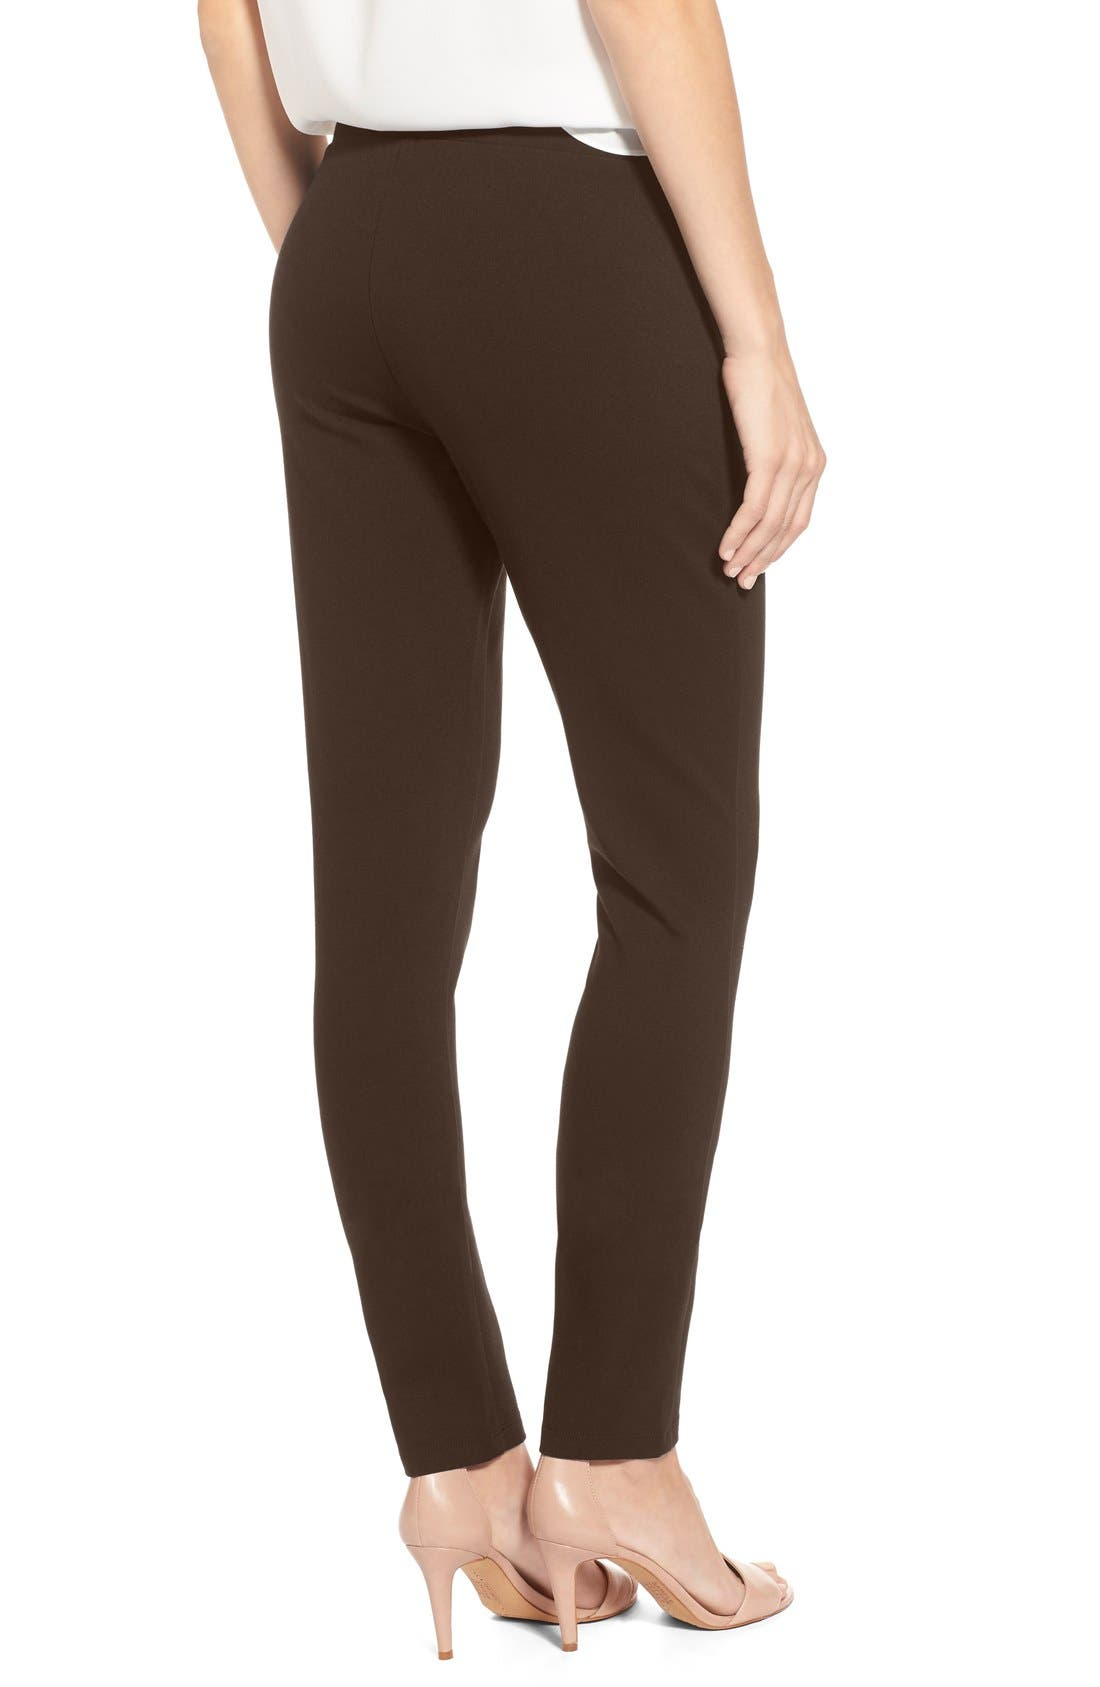 Alternate Image 2  - NYDJ Stretch 'Jodie' Ponte Leggings (Regular & Petite)